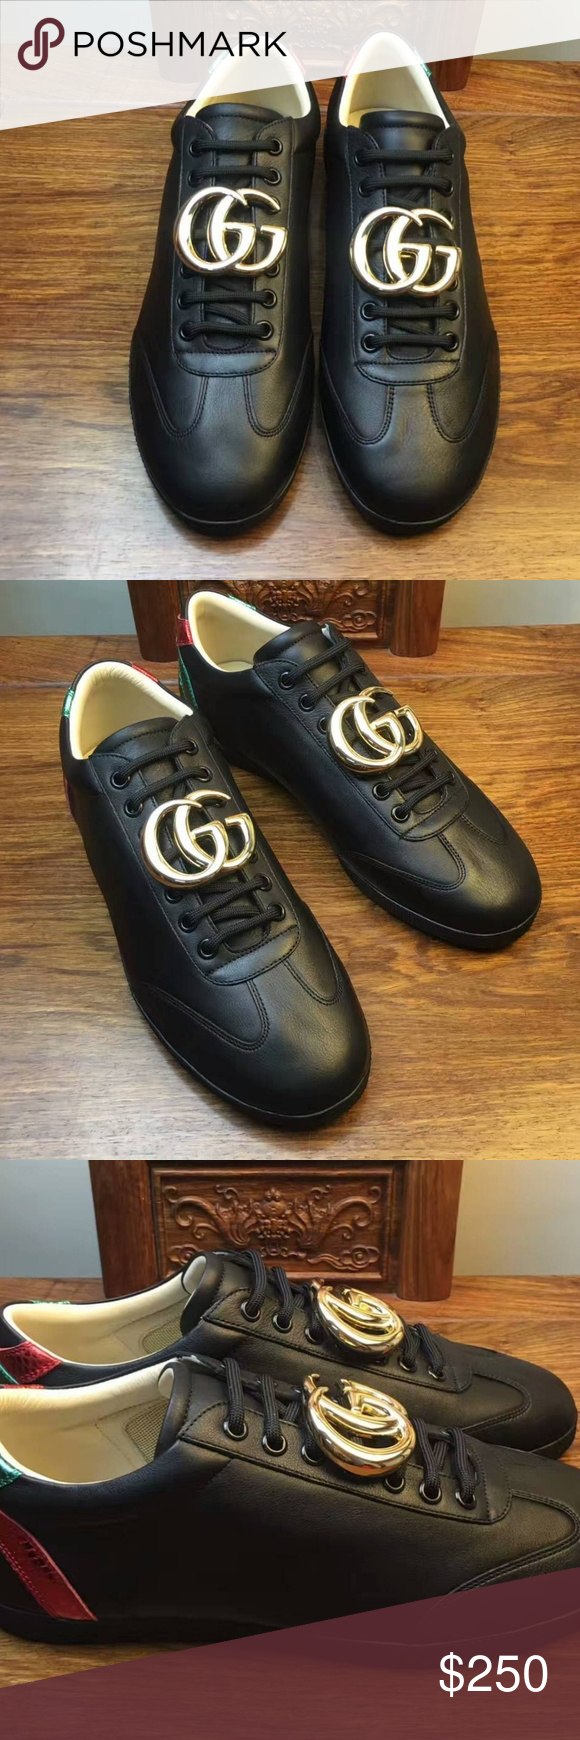 Gucci shoes sneakers